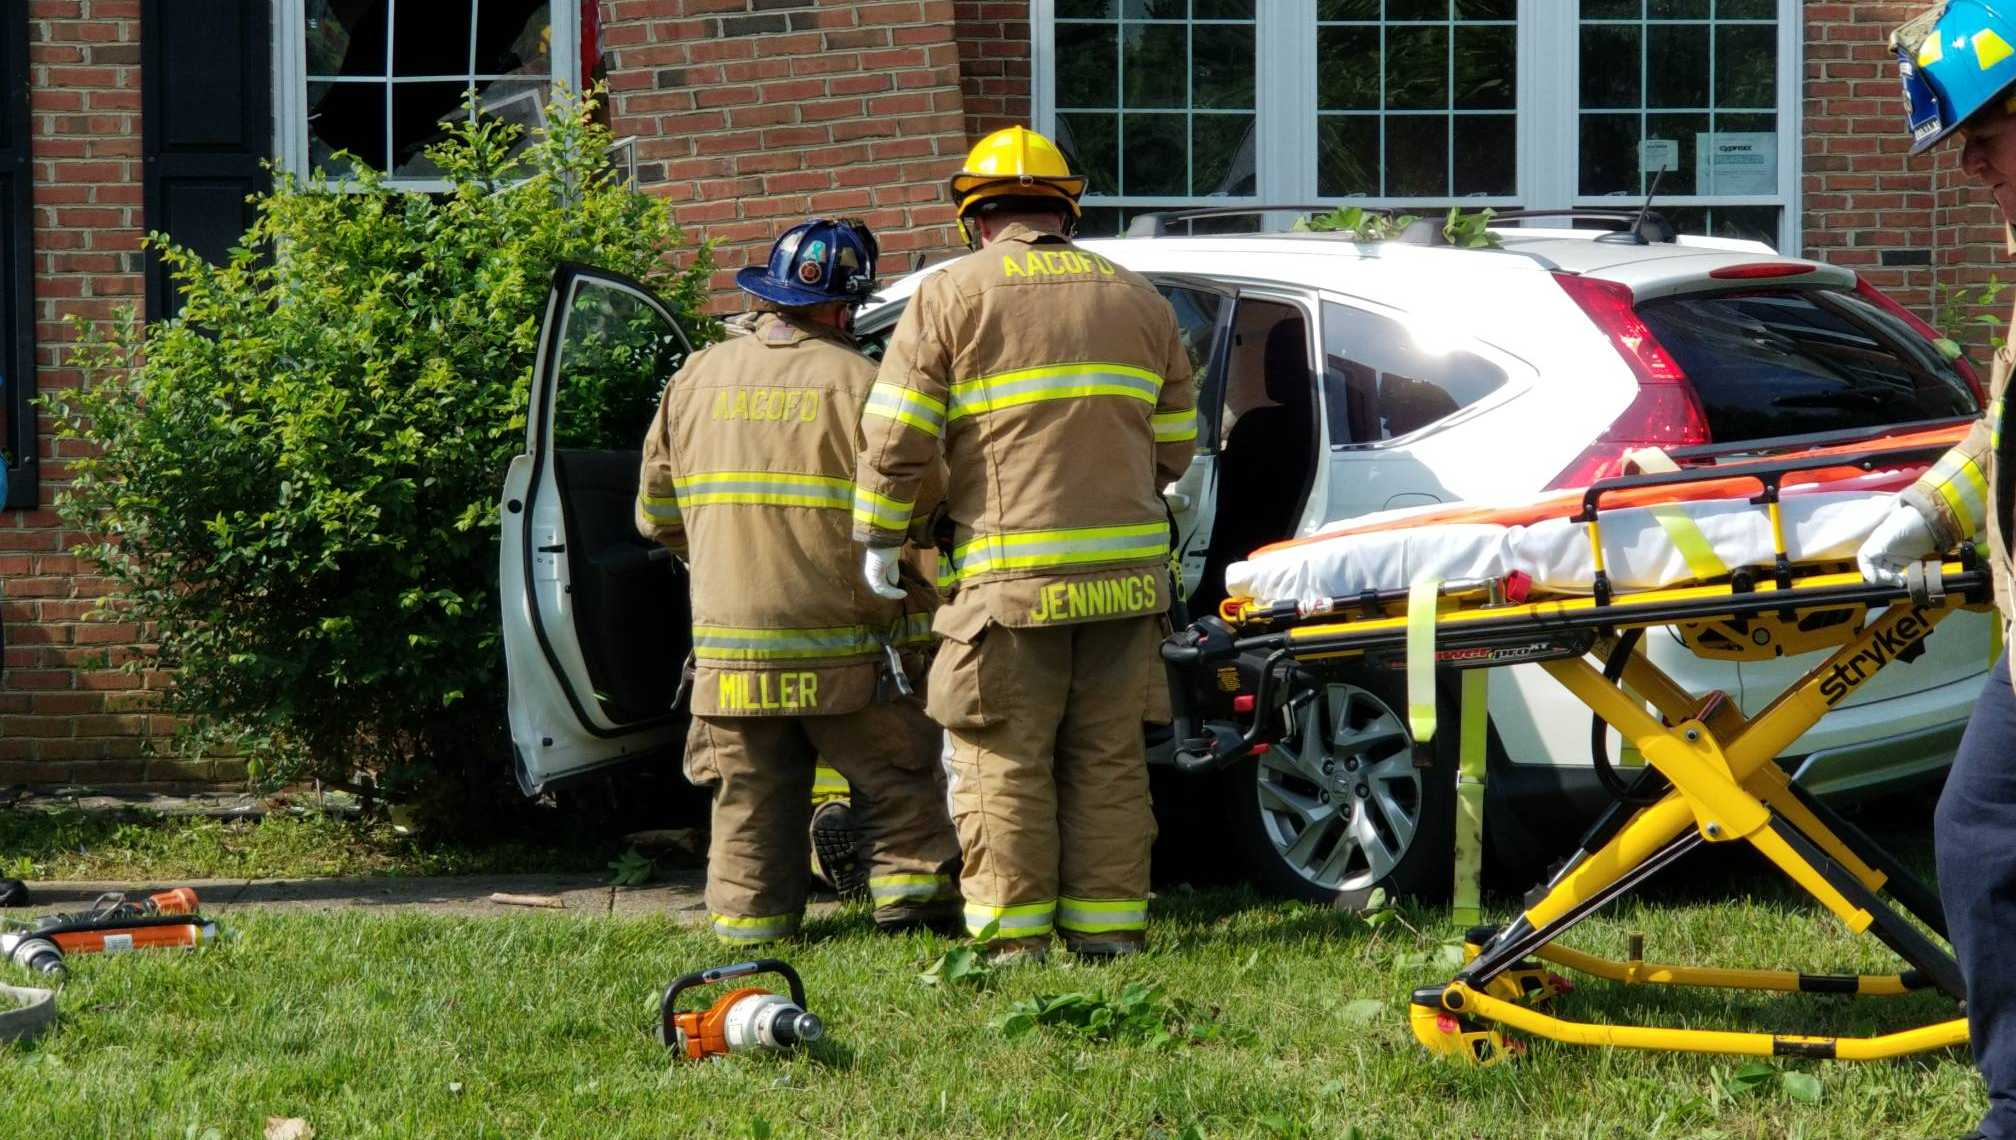 Car crashes into Millersville house